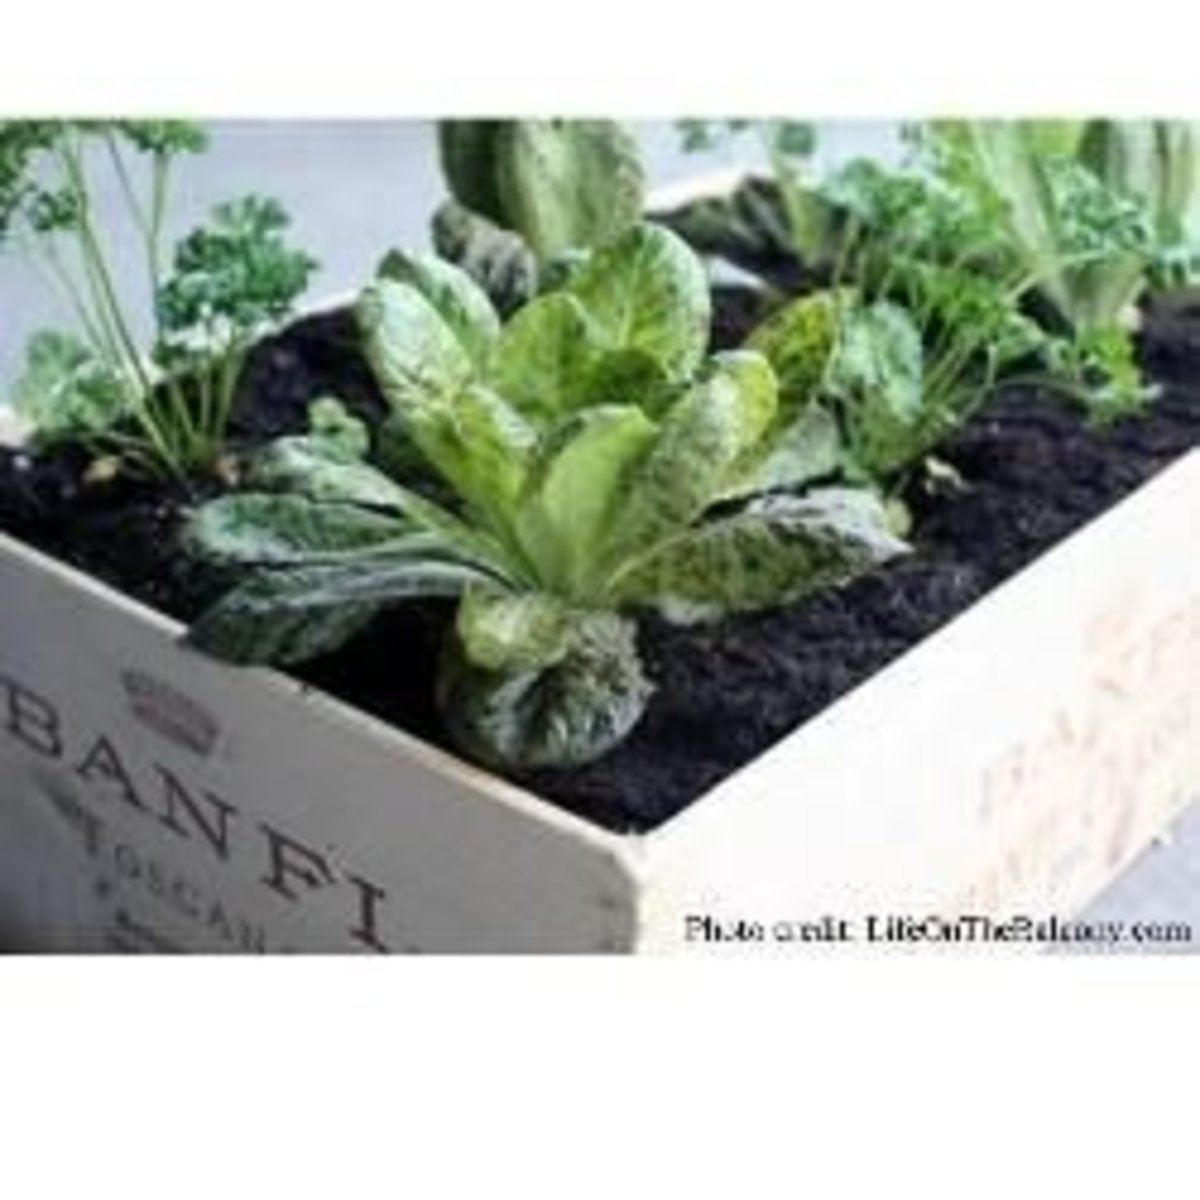 Dress Up Your Garden With a Wine Crate Herb Box | Dengarden on